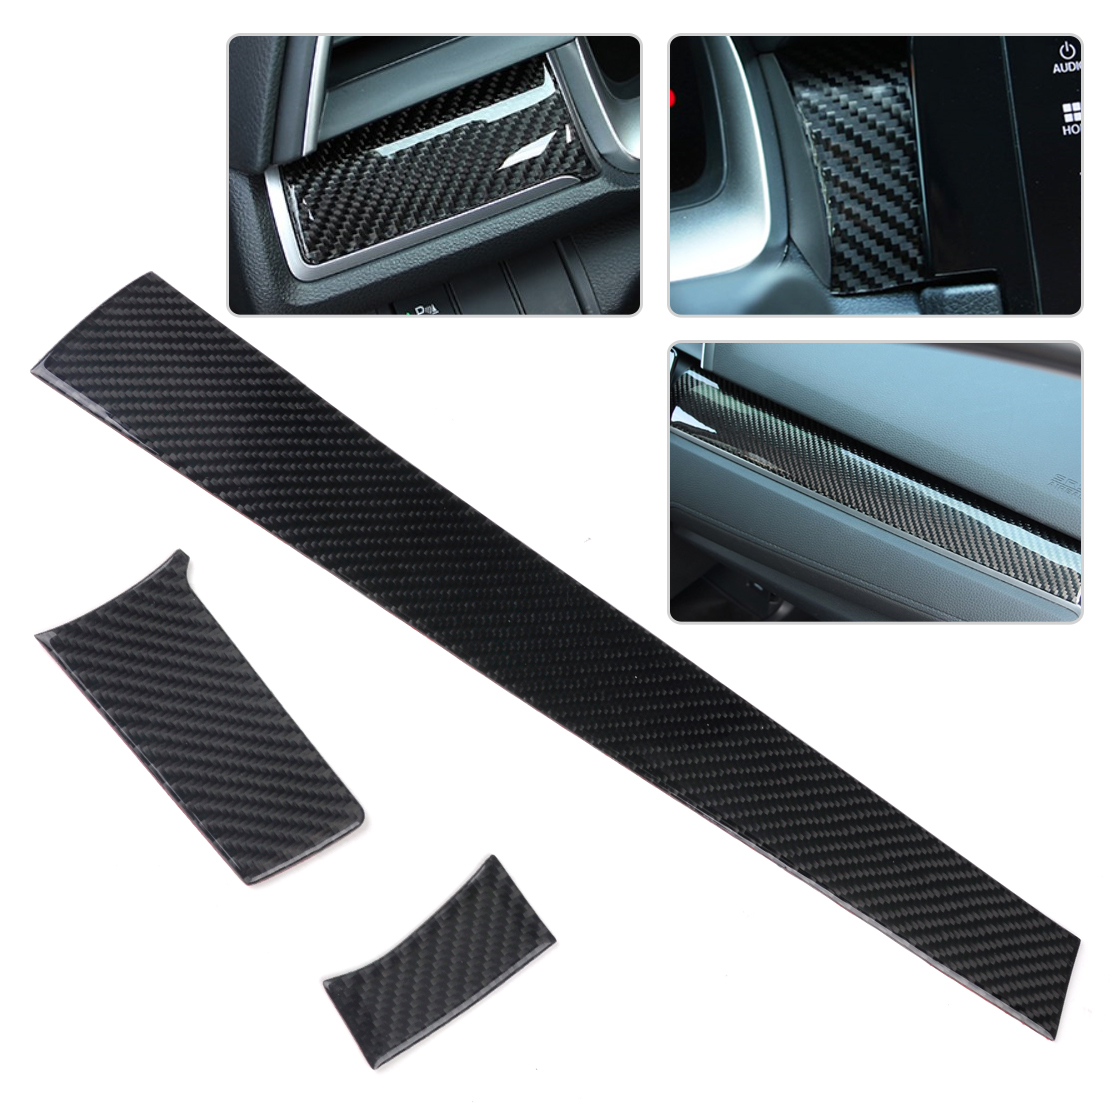 beler High Performance 3pcs Black Carbon Fiber Center Console Dashboard Cover Trim Sticker Fit for Honda Civic 2016 best top selling new stylish decal carbon fiber skin sticker for xbox one console